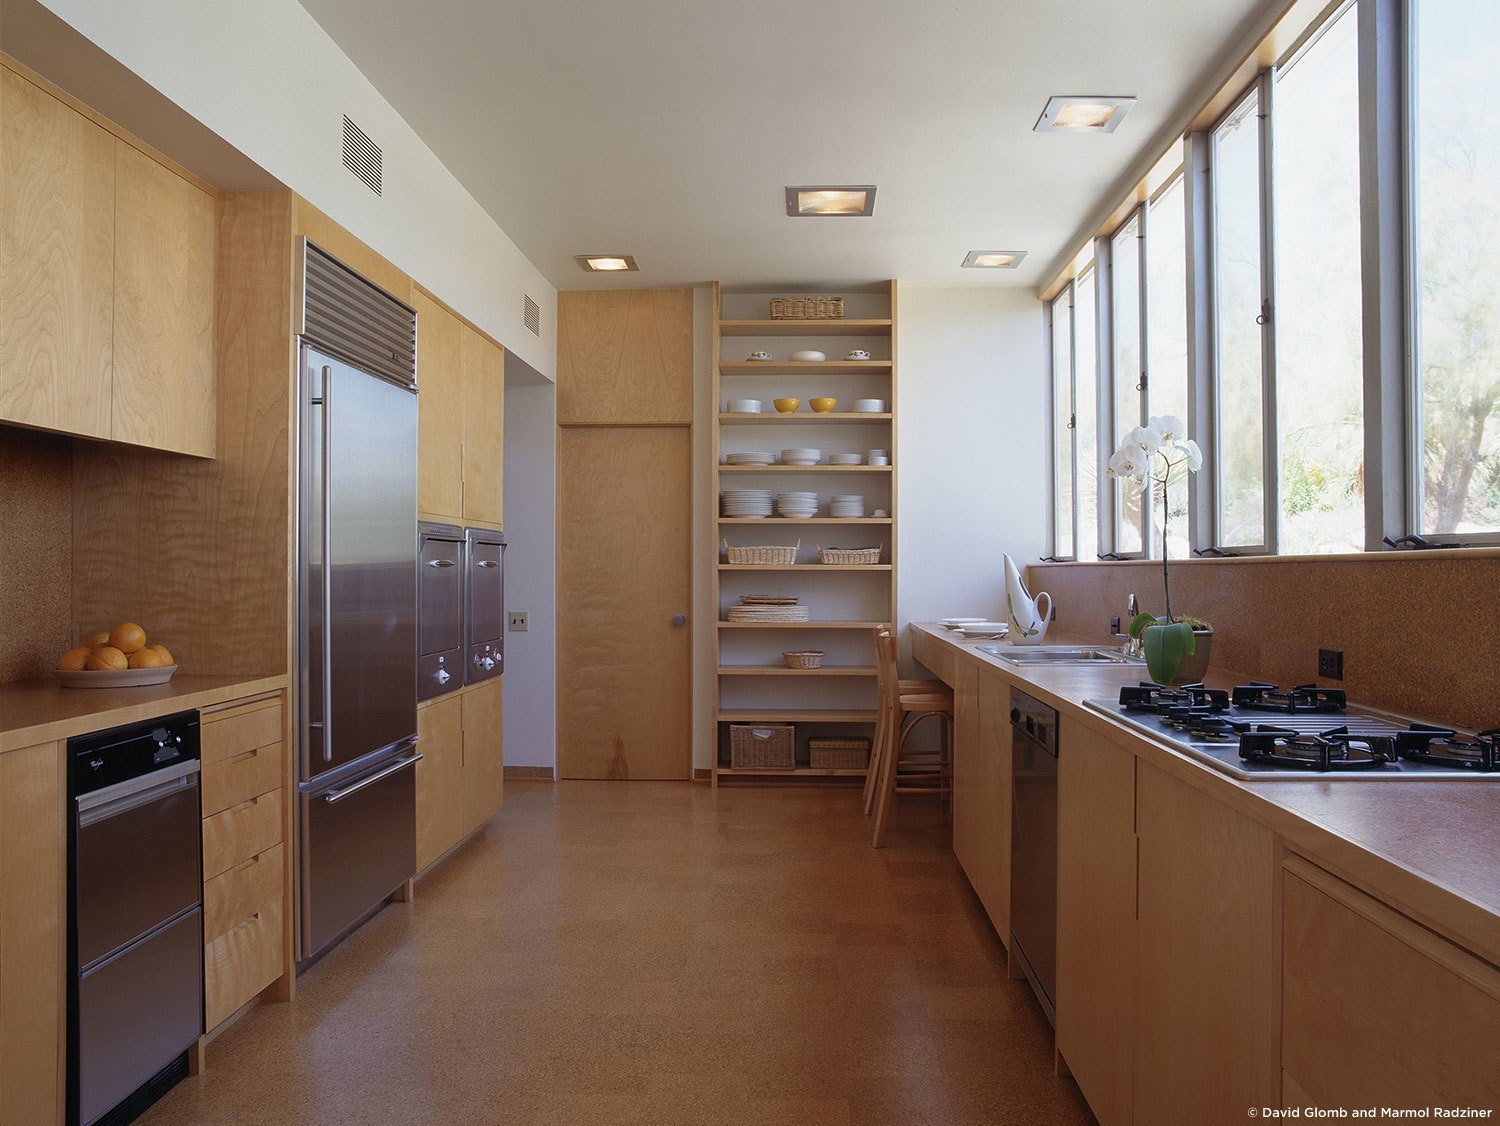 #KaufmannHouse #modern #midcentury #Nuetra #1946 #restoration #archival #original #details #lighting #interior #inside #wood #kitchen #appliances #stove #shelves #PalmSprings #California #MarmolRadziner